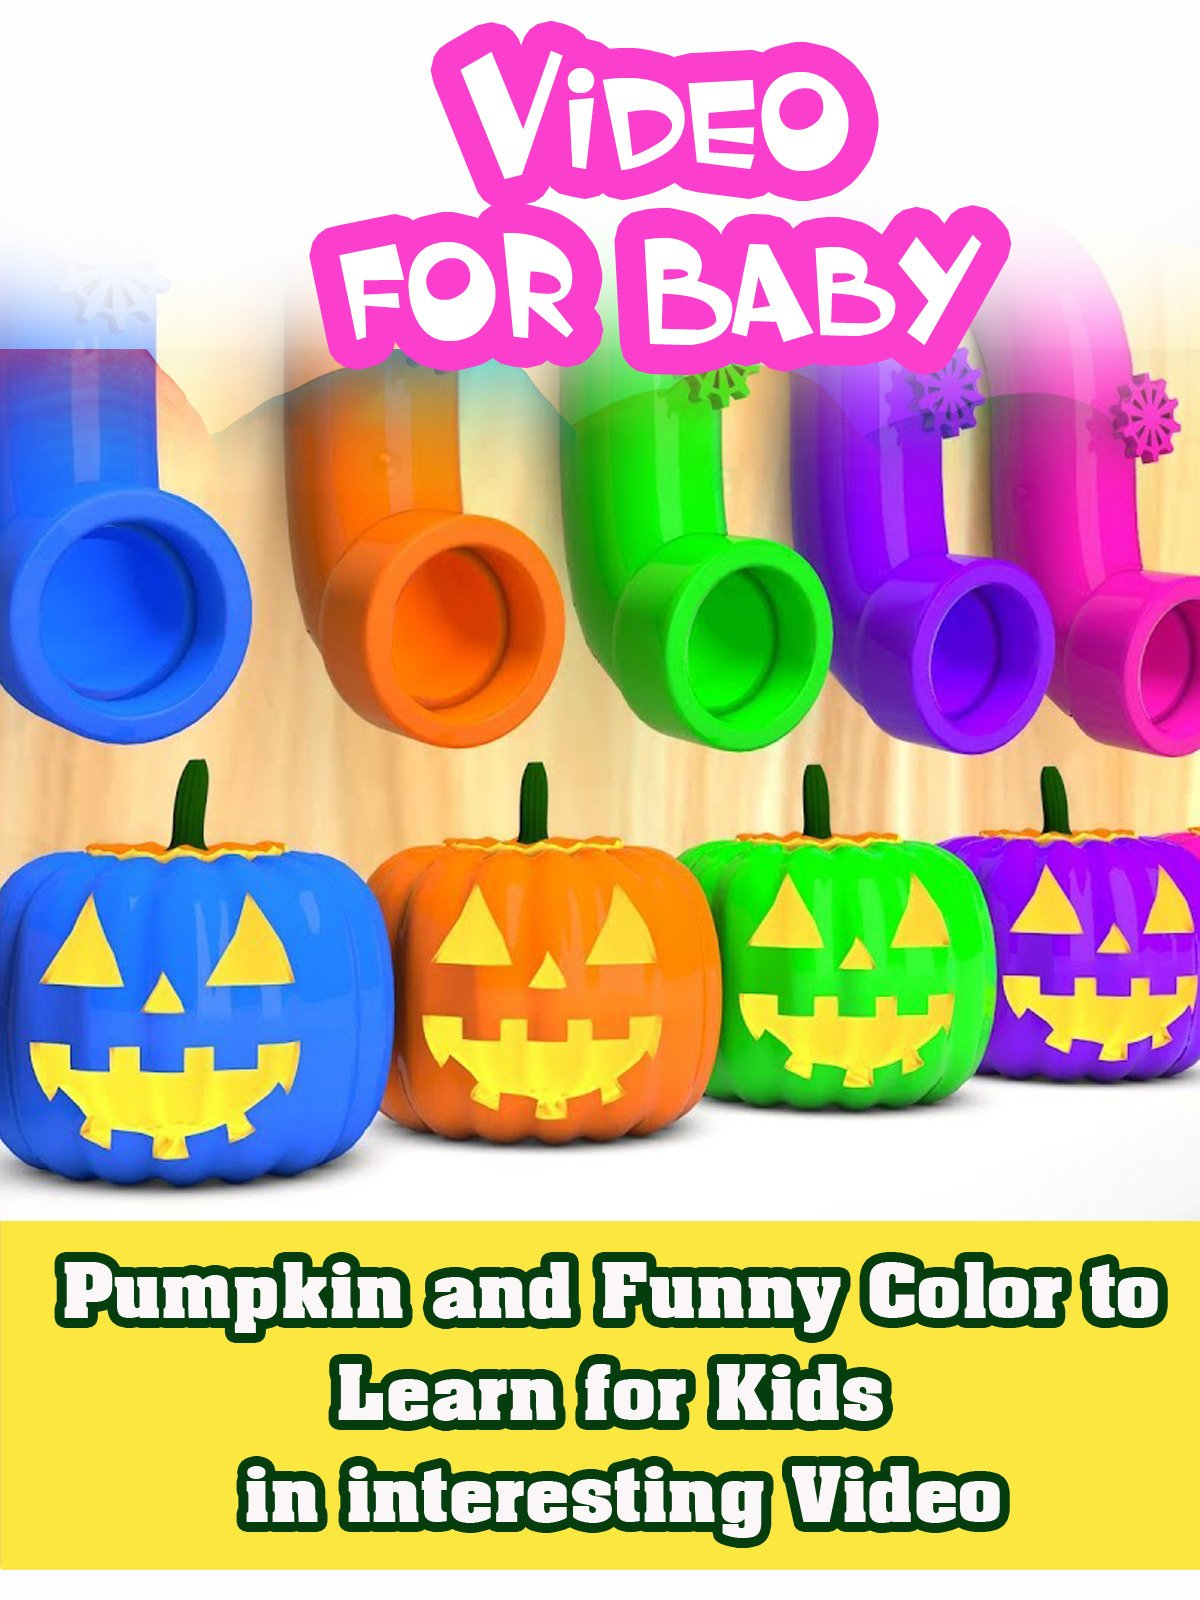 Pumpkin and Funny Color to Learn for Kids in interesting Video